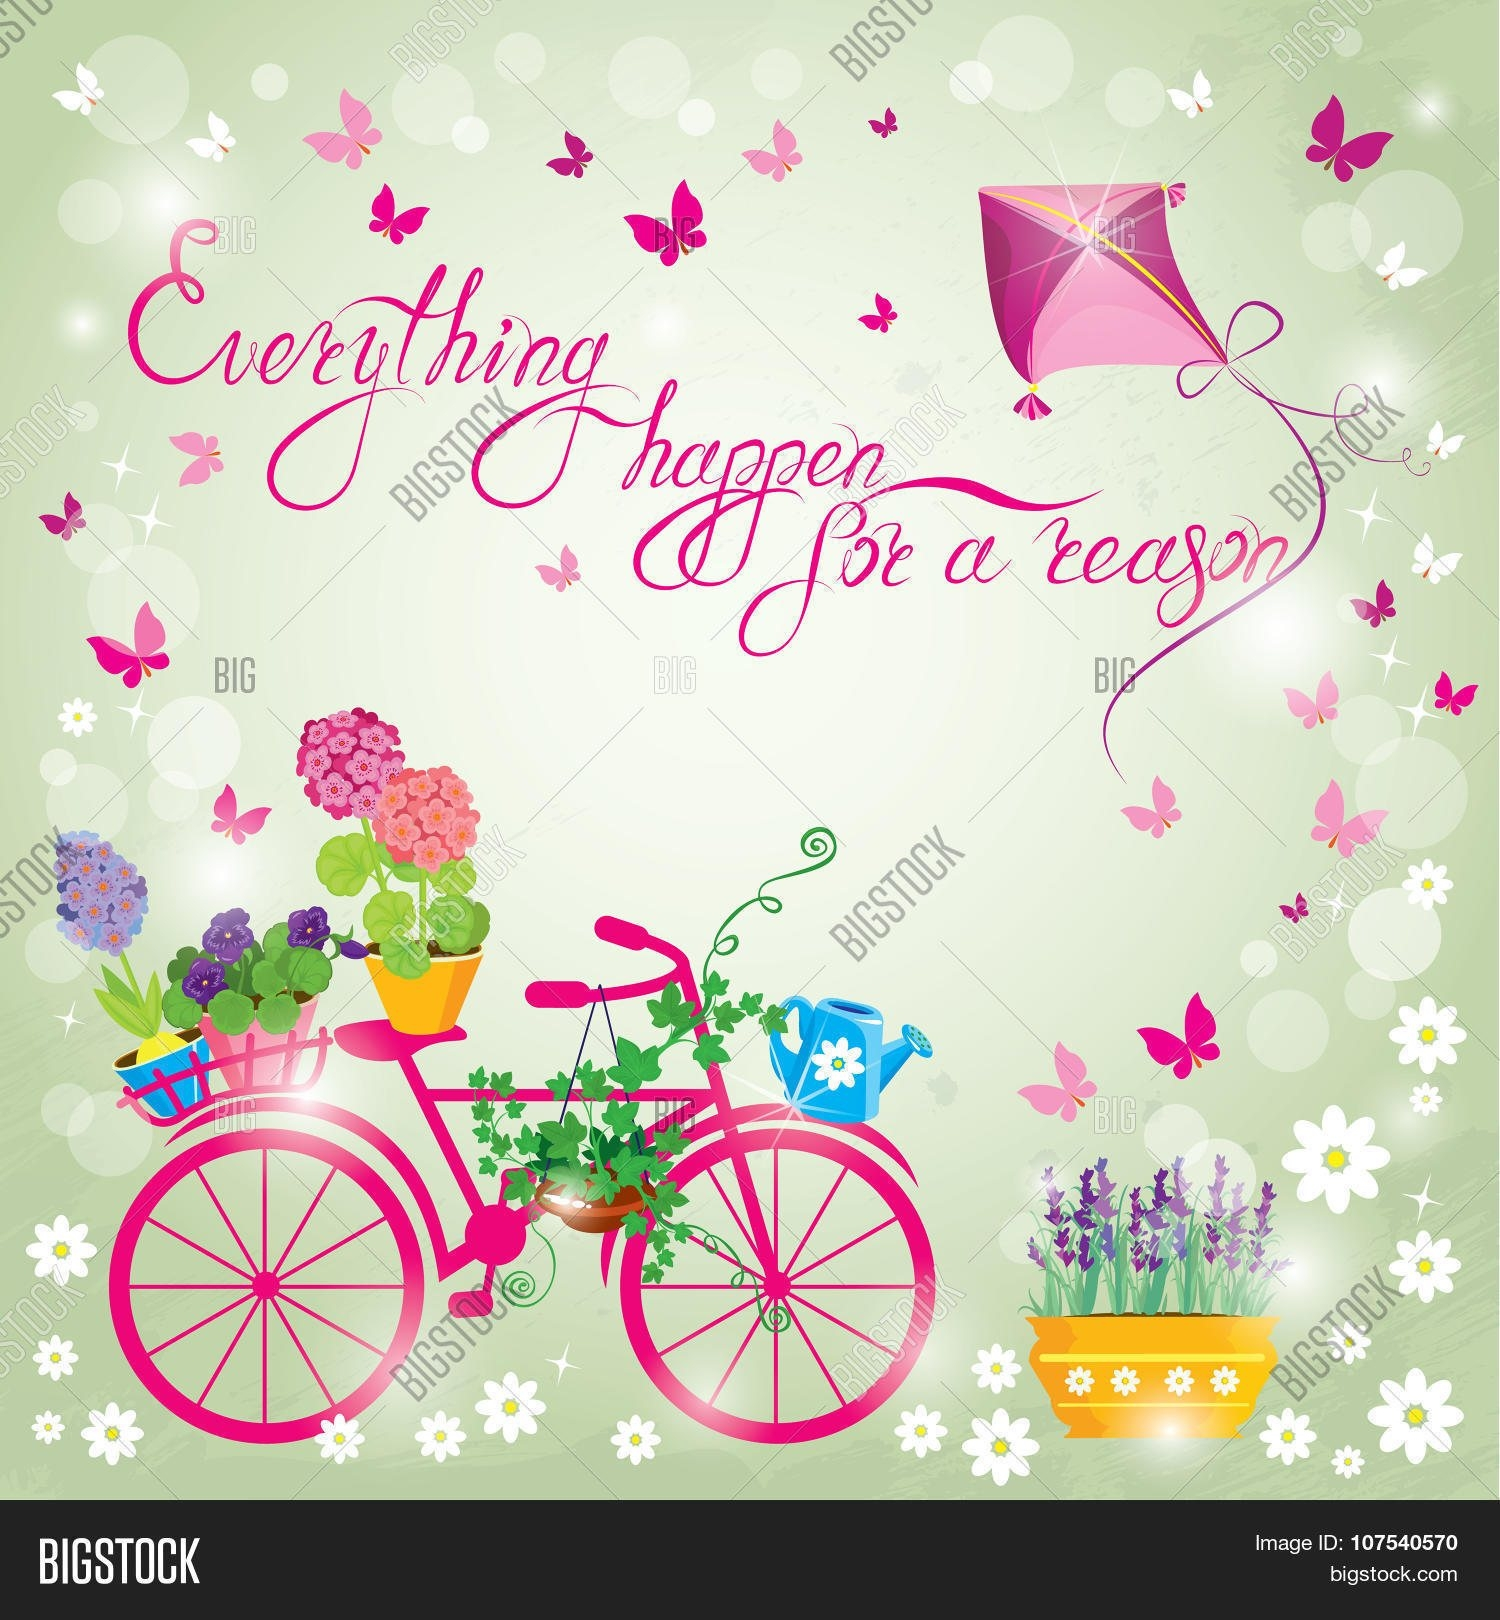 background design for birthday card ; image-flowers-pots-bicycle-on-sky-vector-photo-bigstock-inside-birthday-invitation-card-background-design